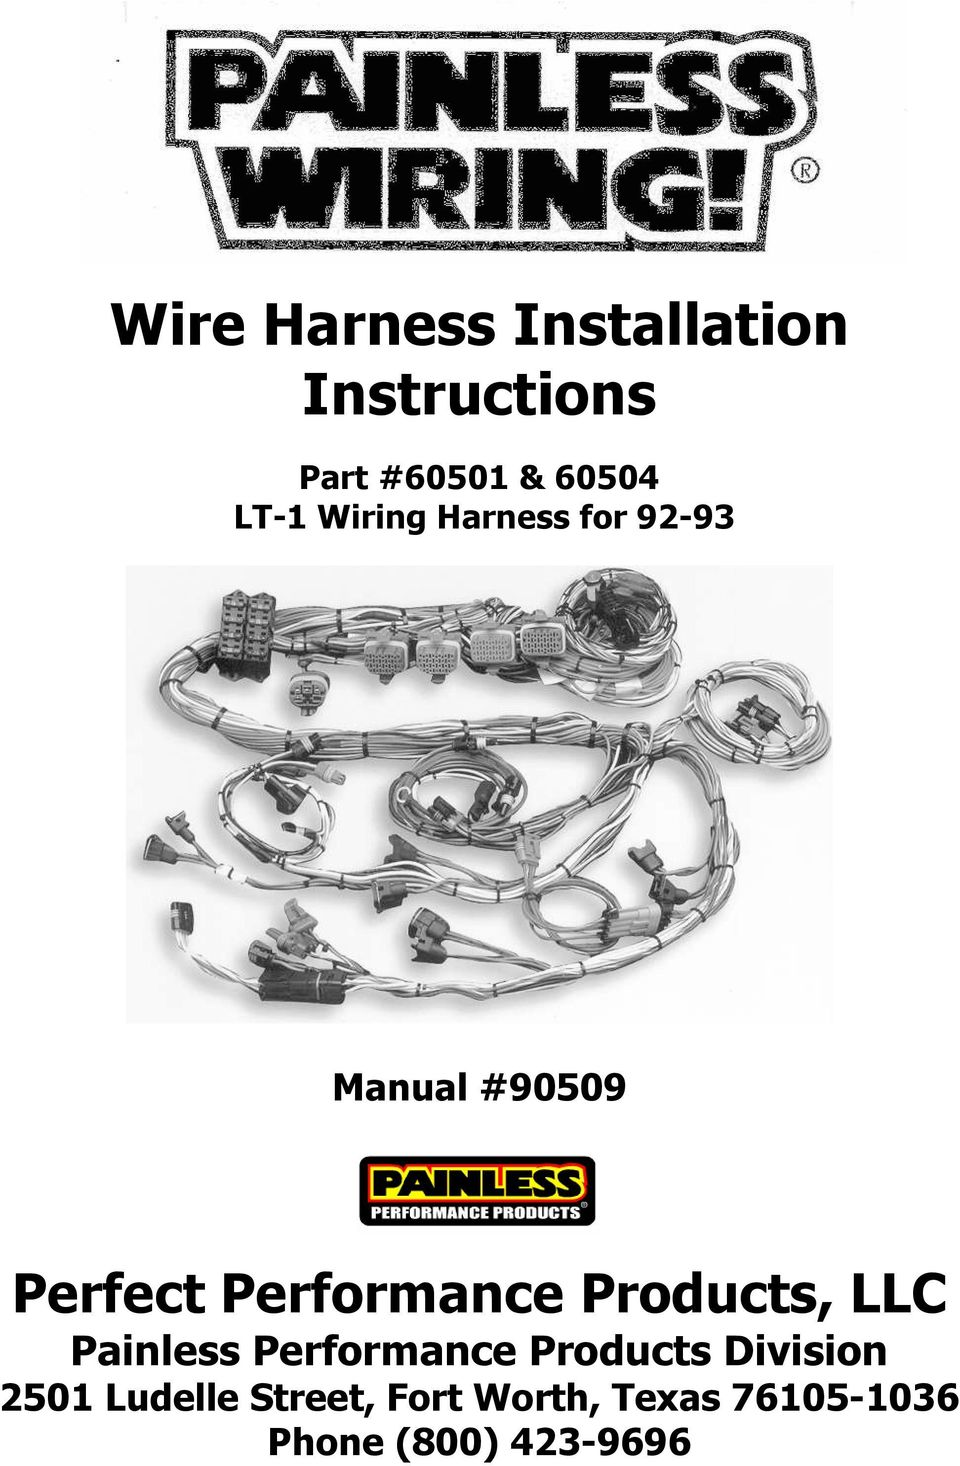 Wire Harness Installation Instructions Pdf 5 Hitch Performance Products Llc Painless